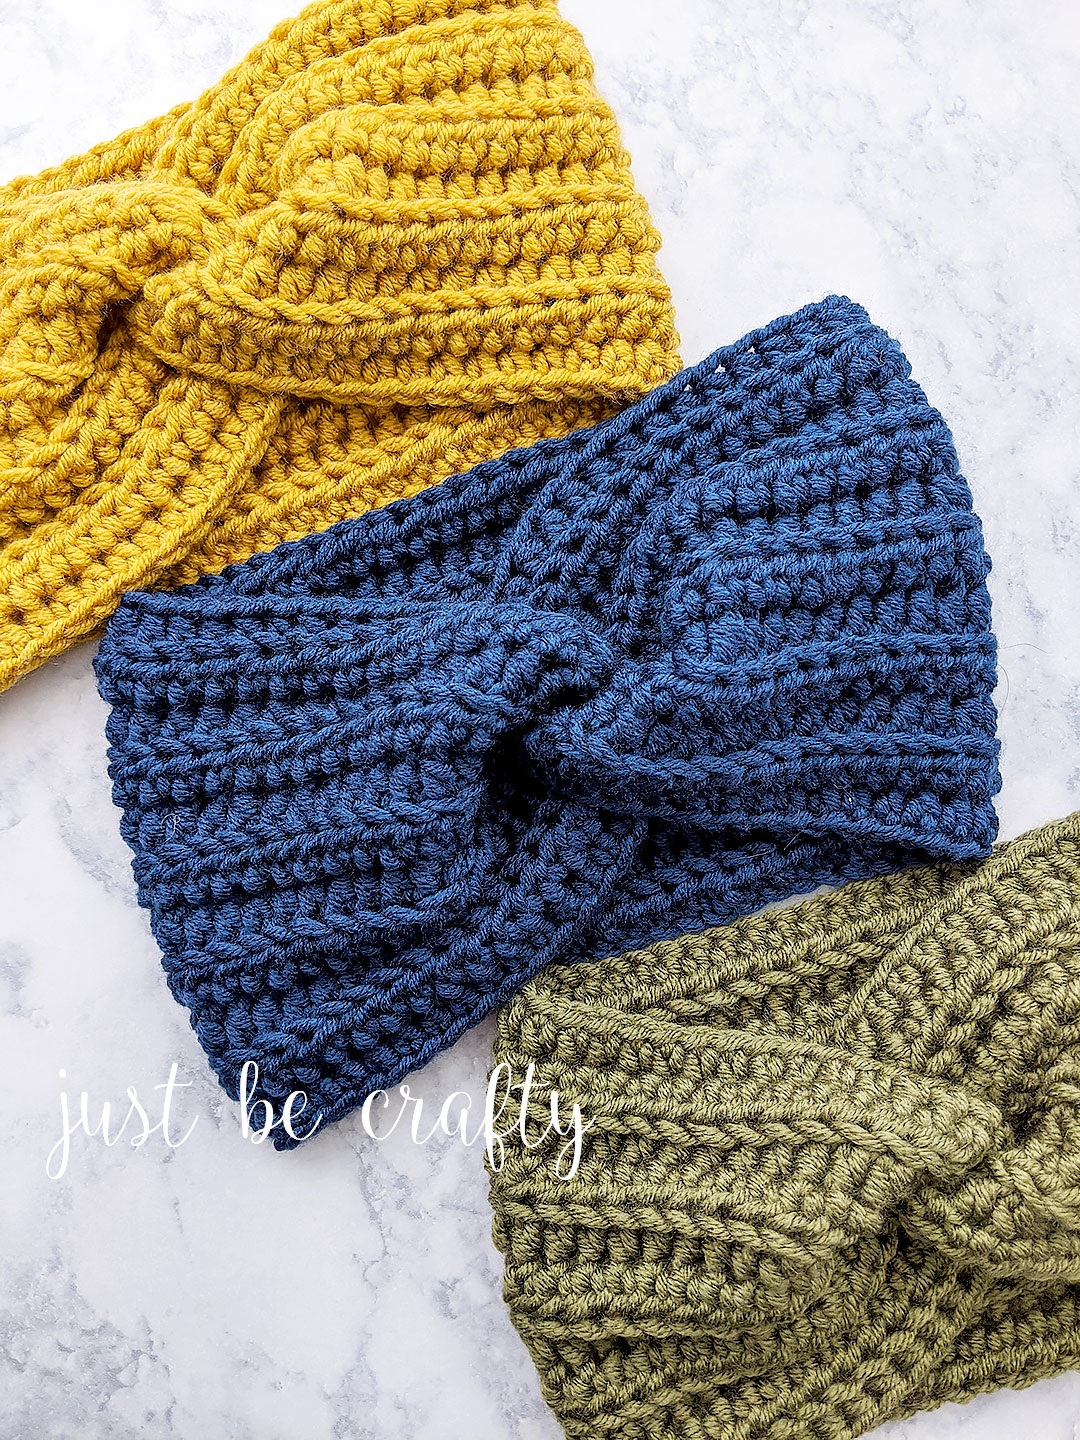 Crochet Twisted Ear Warmer Headband - Free crochet pattern and video tutorial by Just Be Crafty